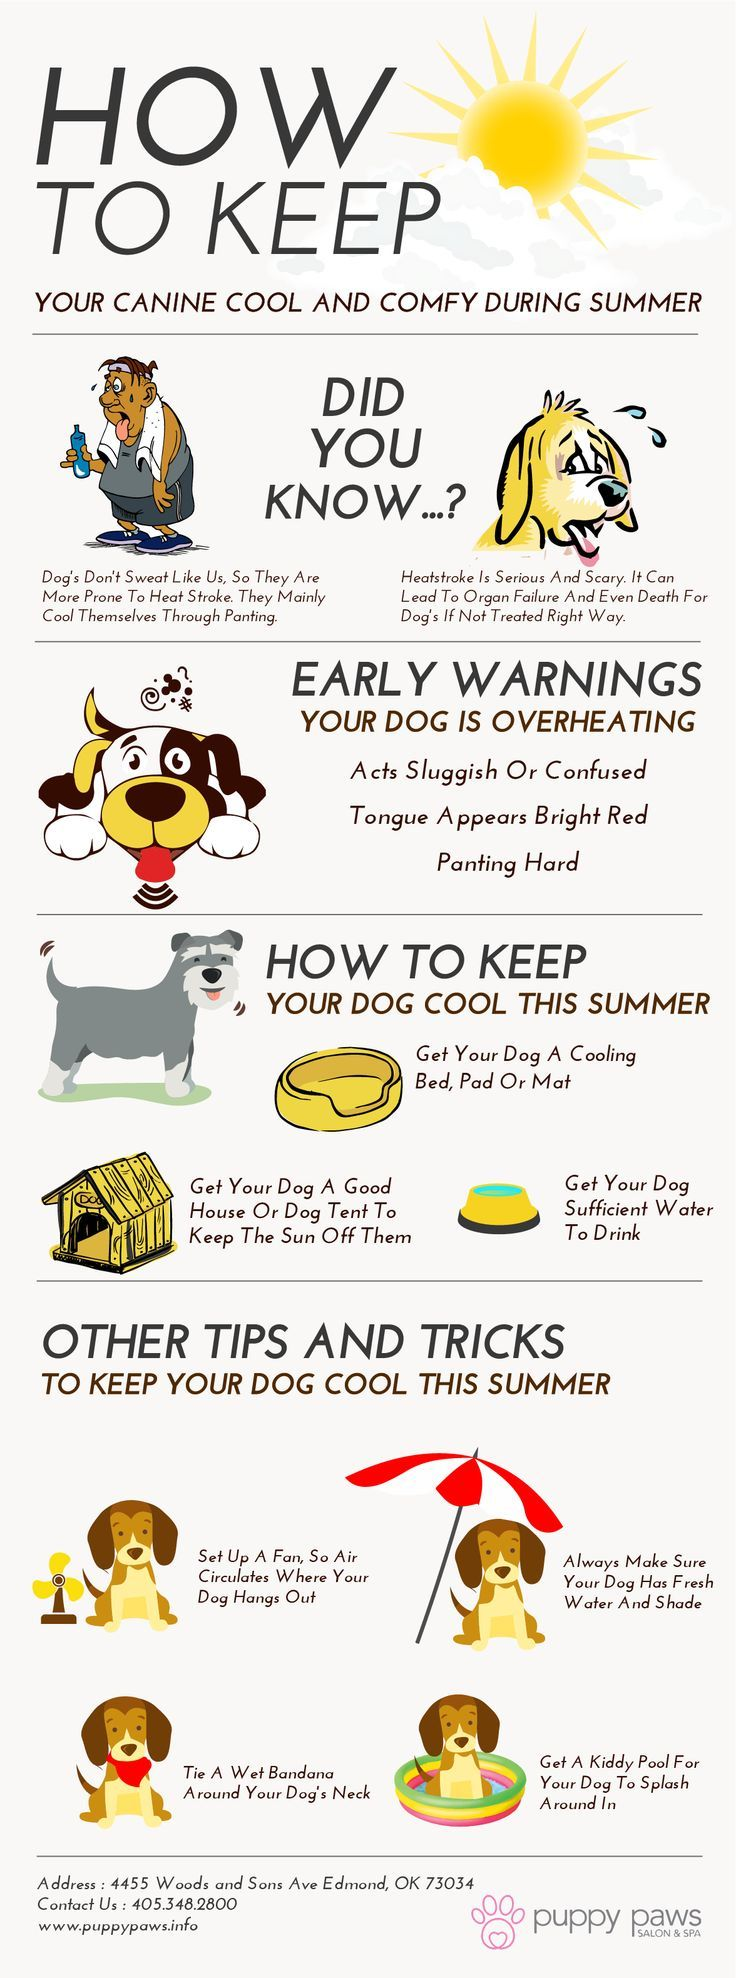 Dogs Are Often Prone To Heat Stroke And Hence It Is Essential To Keep Them Cool During Summer Puppy Paws Salon An Summer Dog Heat Stroke In Dogs Dog Training